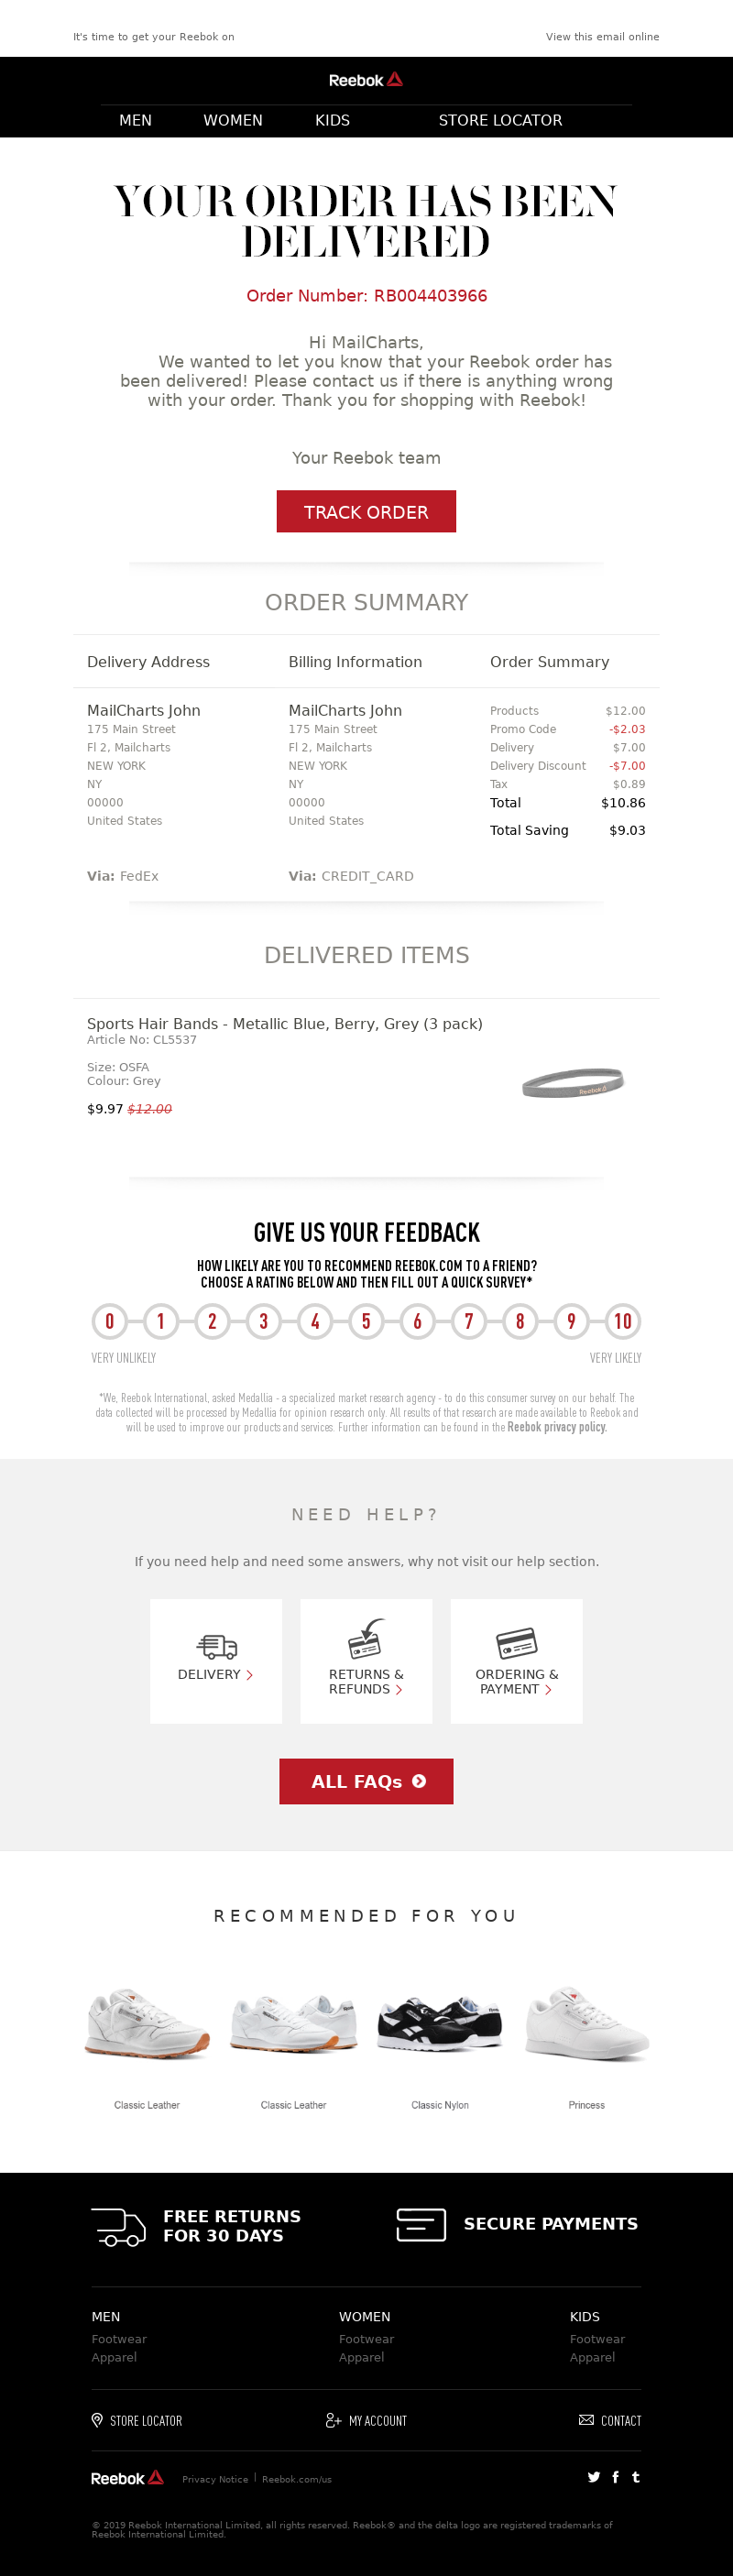 Example of Delivery Confirmation Email